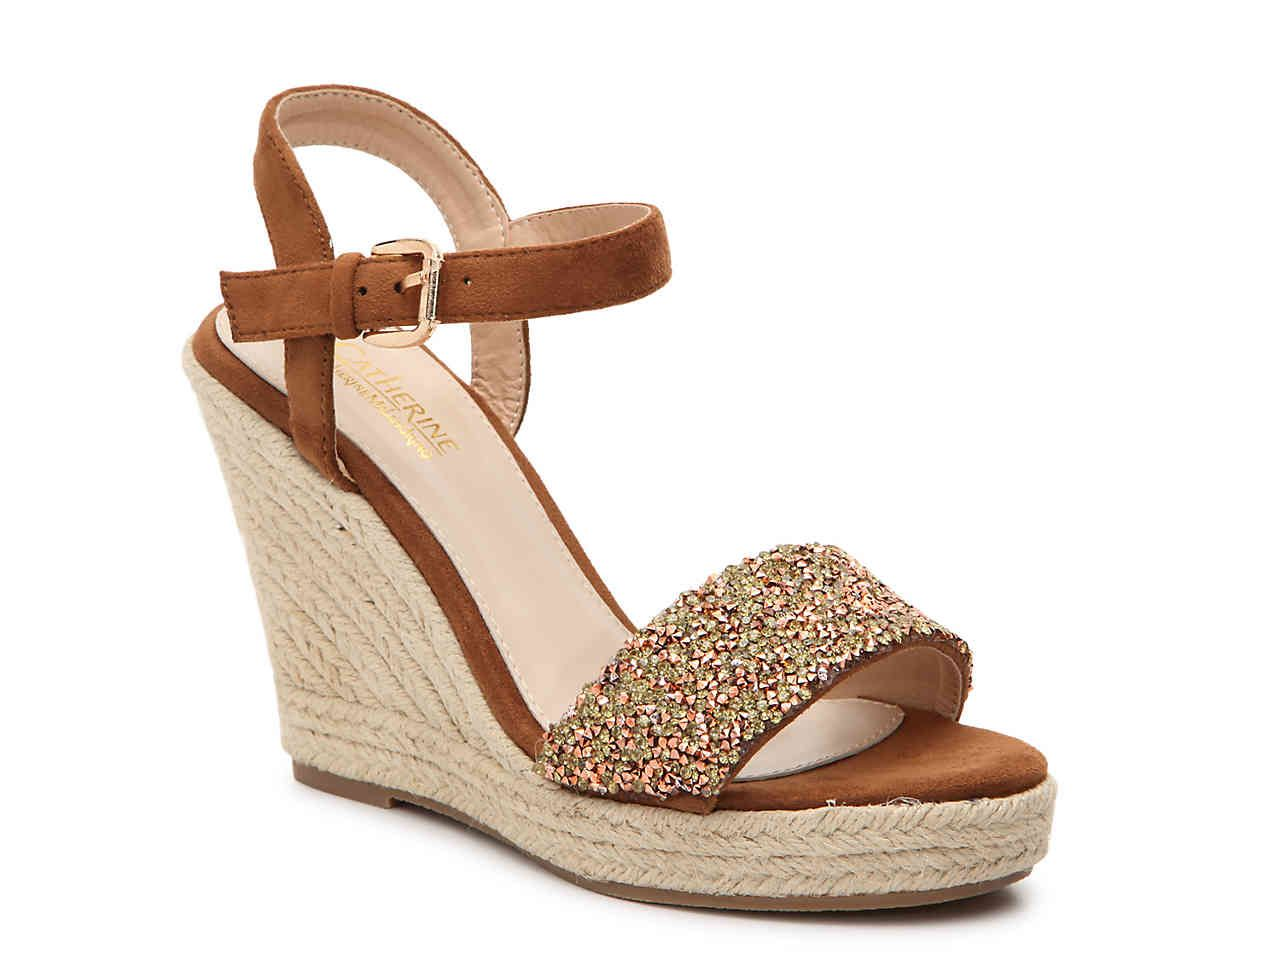 6be5c4b936a Grison Espadrille Wedge Sandal | 00 Sort Me Later! | Shoes, Wedge ...